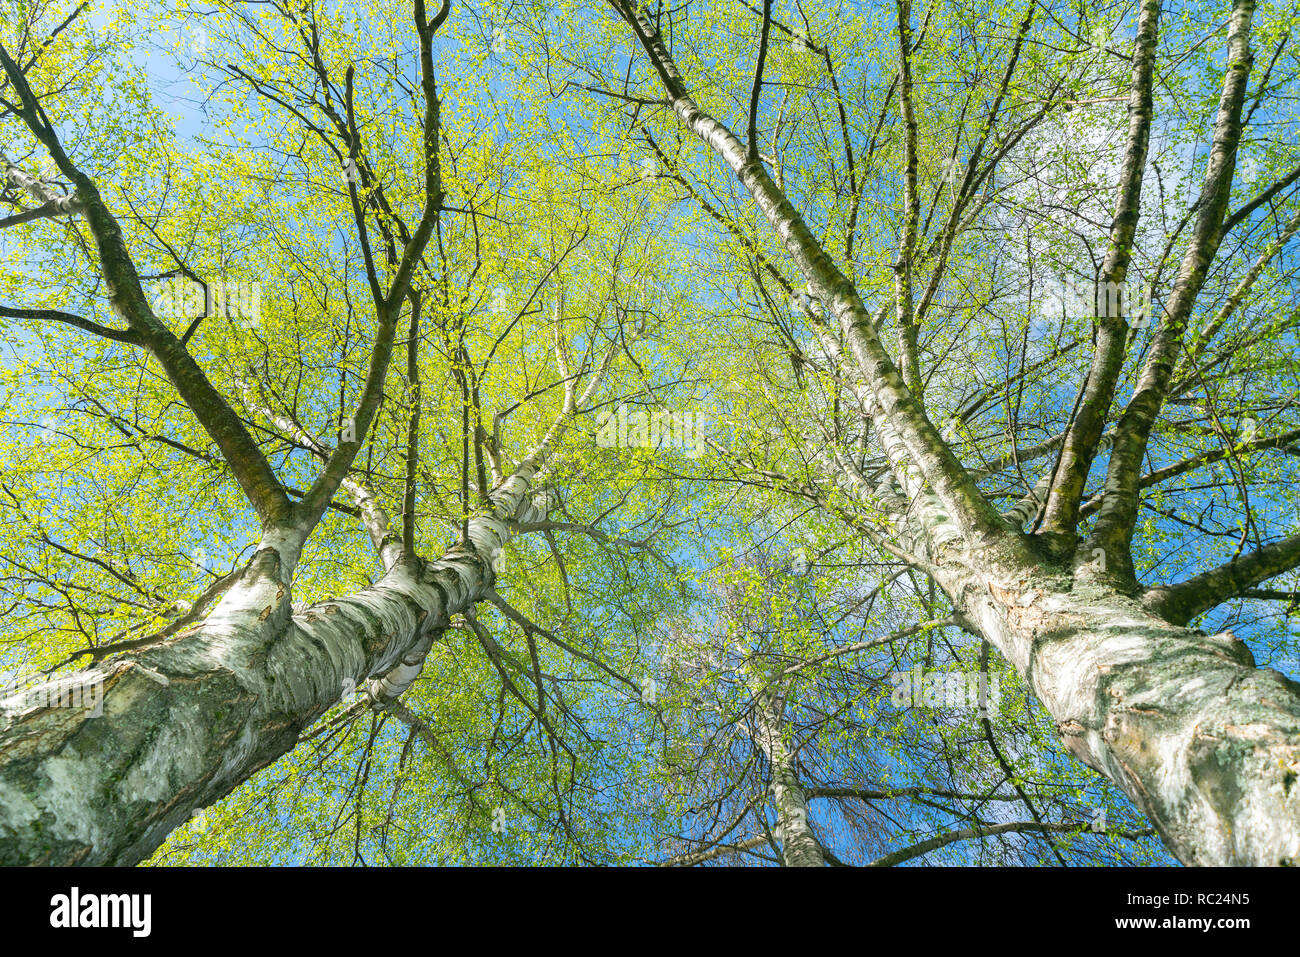 Looking up through silver birch trees with spring growth contrasting with white tree trunks. - Stock Image